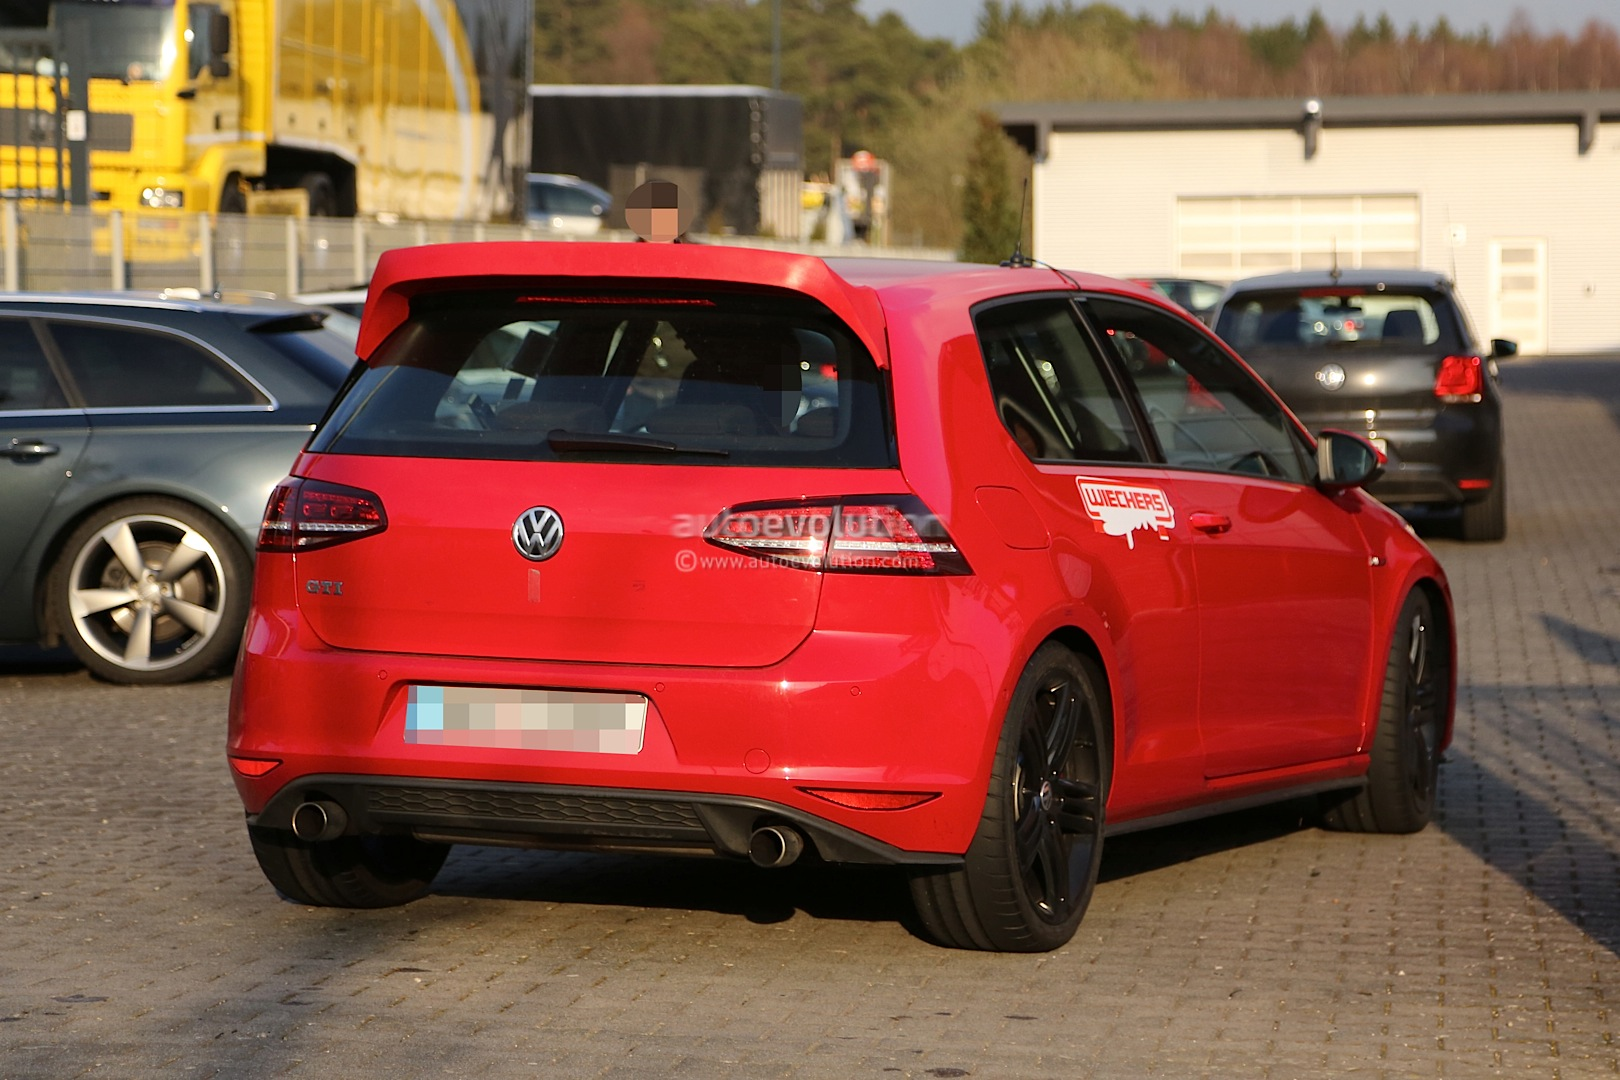 spyshots hardcore vw golf gti club sport spotted at nurburgring autoevolution. Black Bedroom Furniture Sets. Home Design Ideas